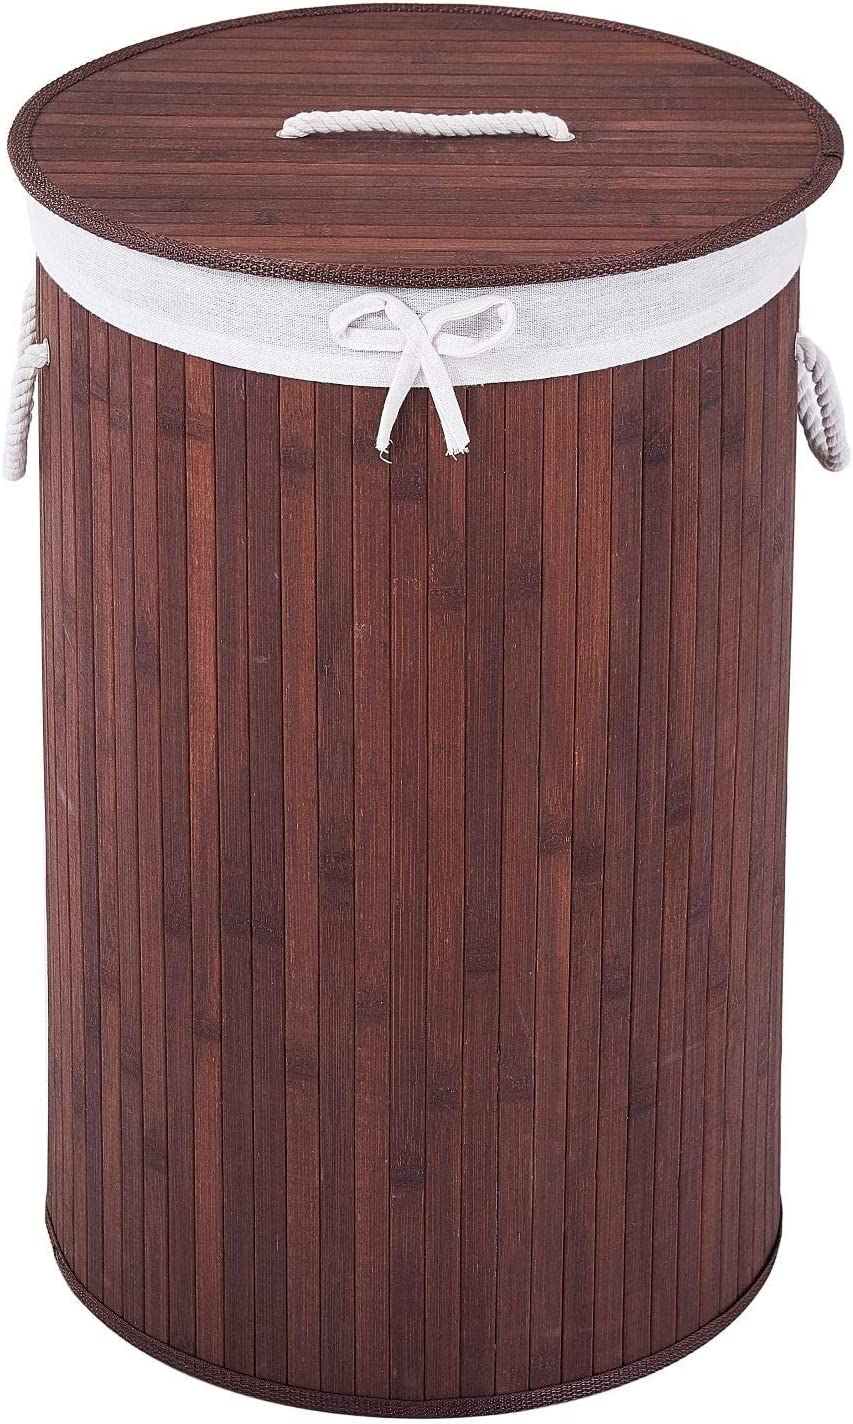 COZAYH 72L All-Natural Bamboo Laundry Hamper with Lid, String Handles and Removable Liner, Foldable Storage Basket, Easily Transport Laundry Bin, Round in Brown/Natural Bamboo Color (Brown)